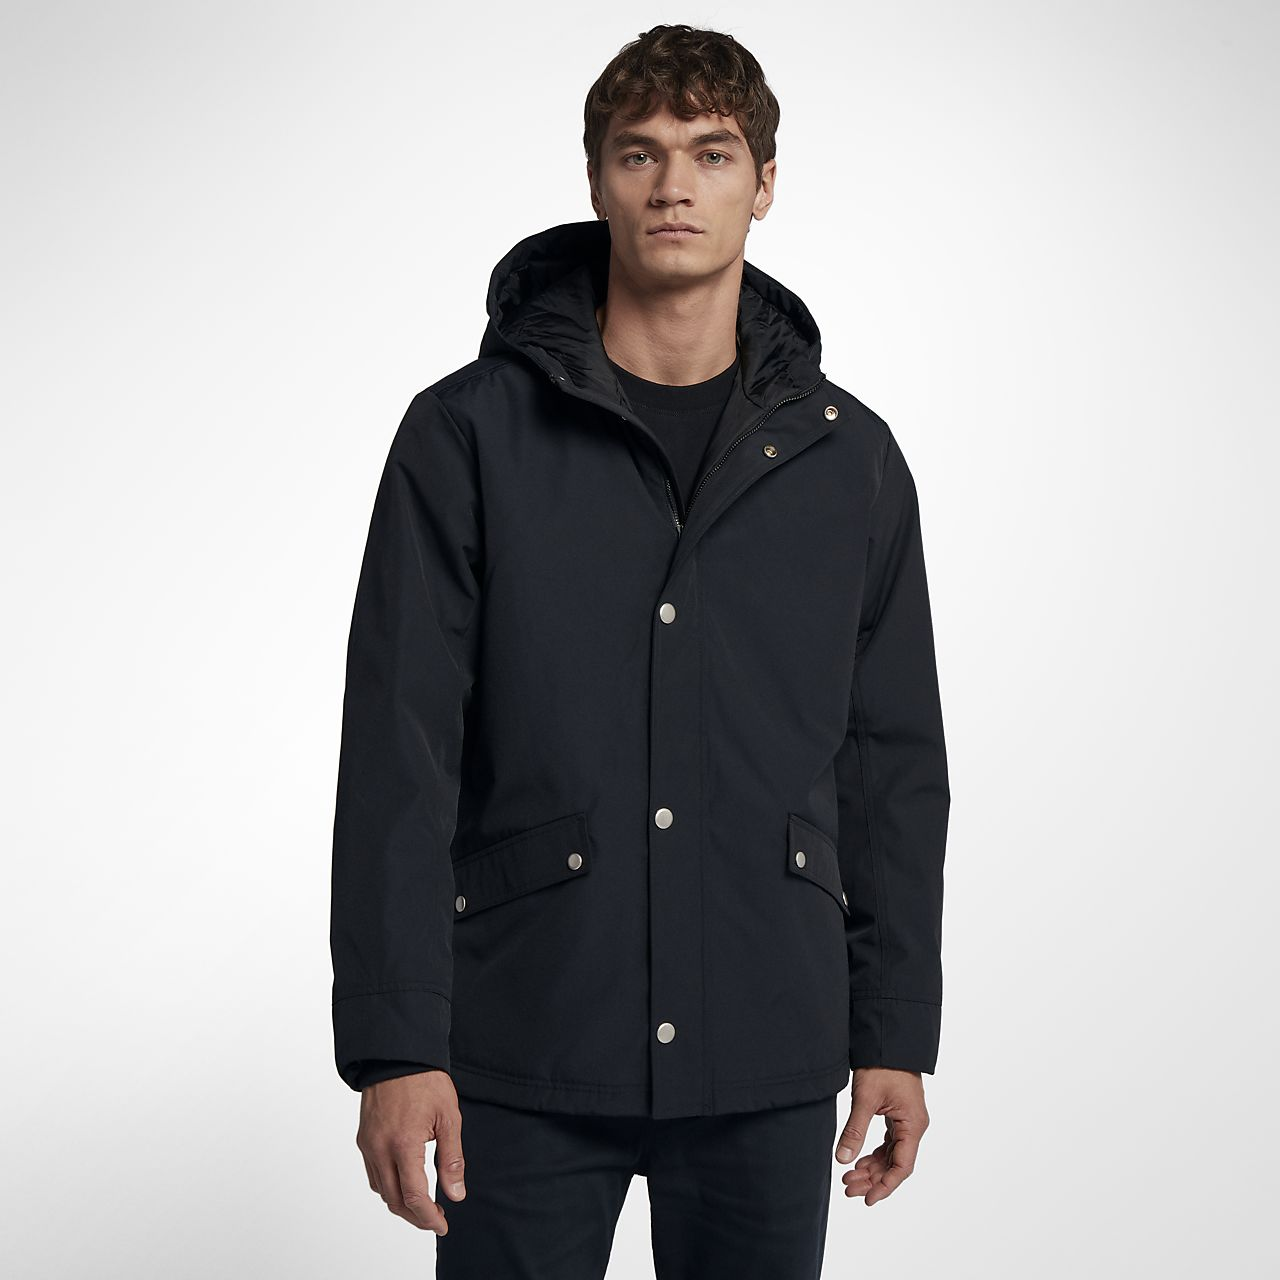 Hurley Timber Men's Hooded Jacket